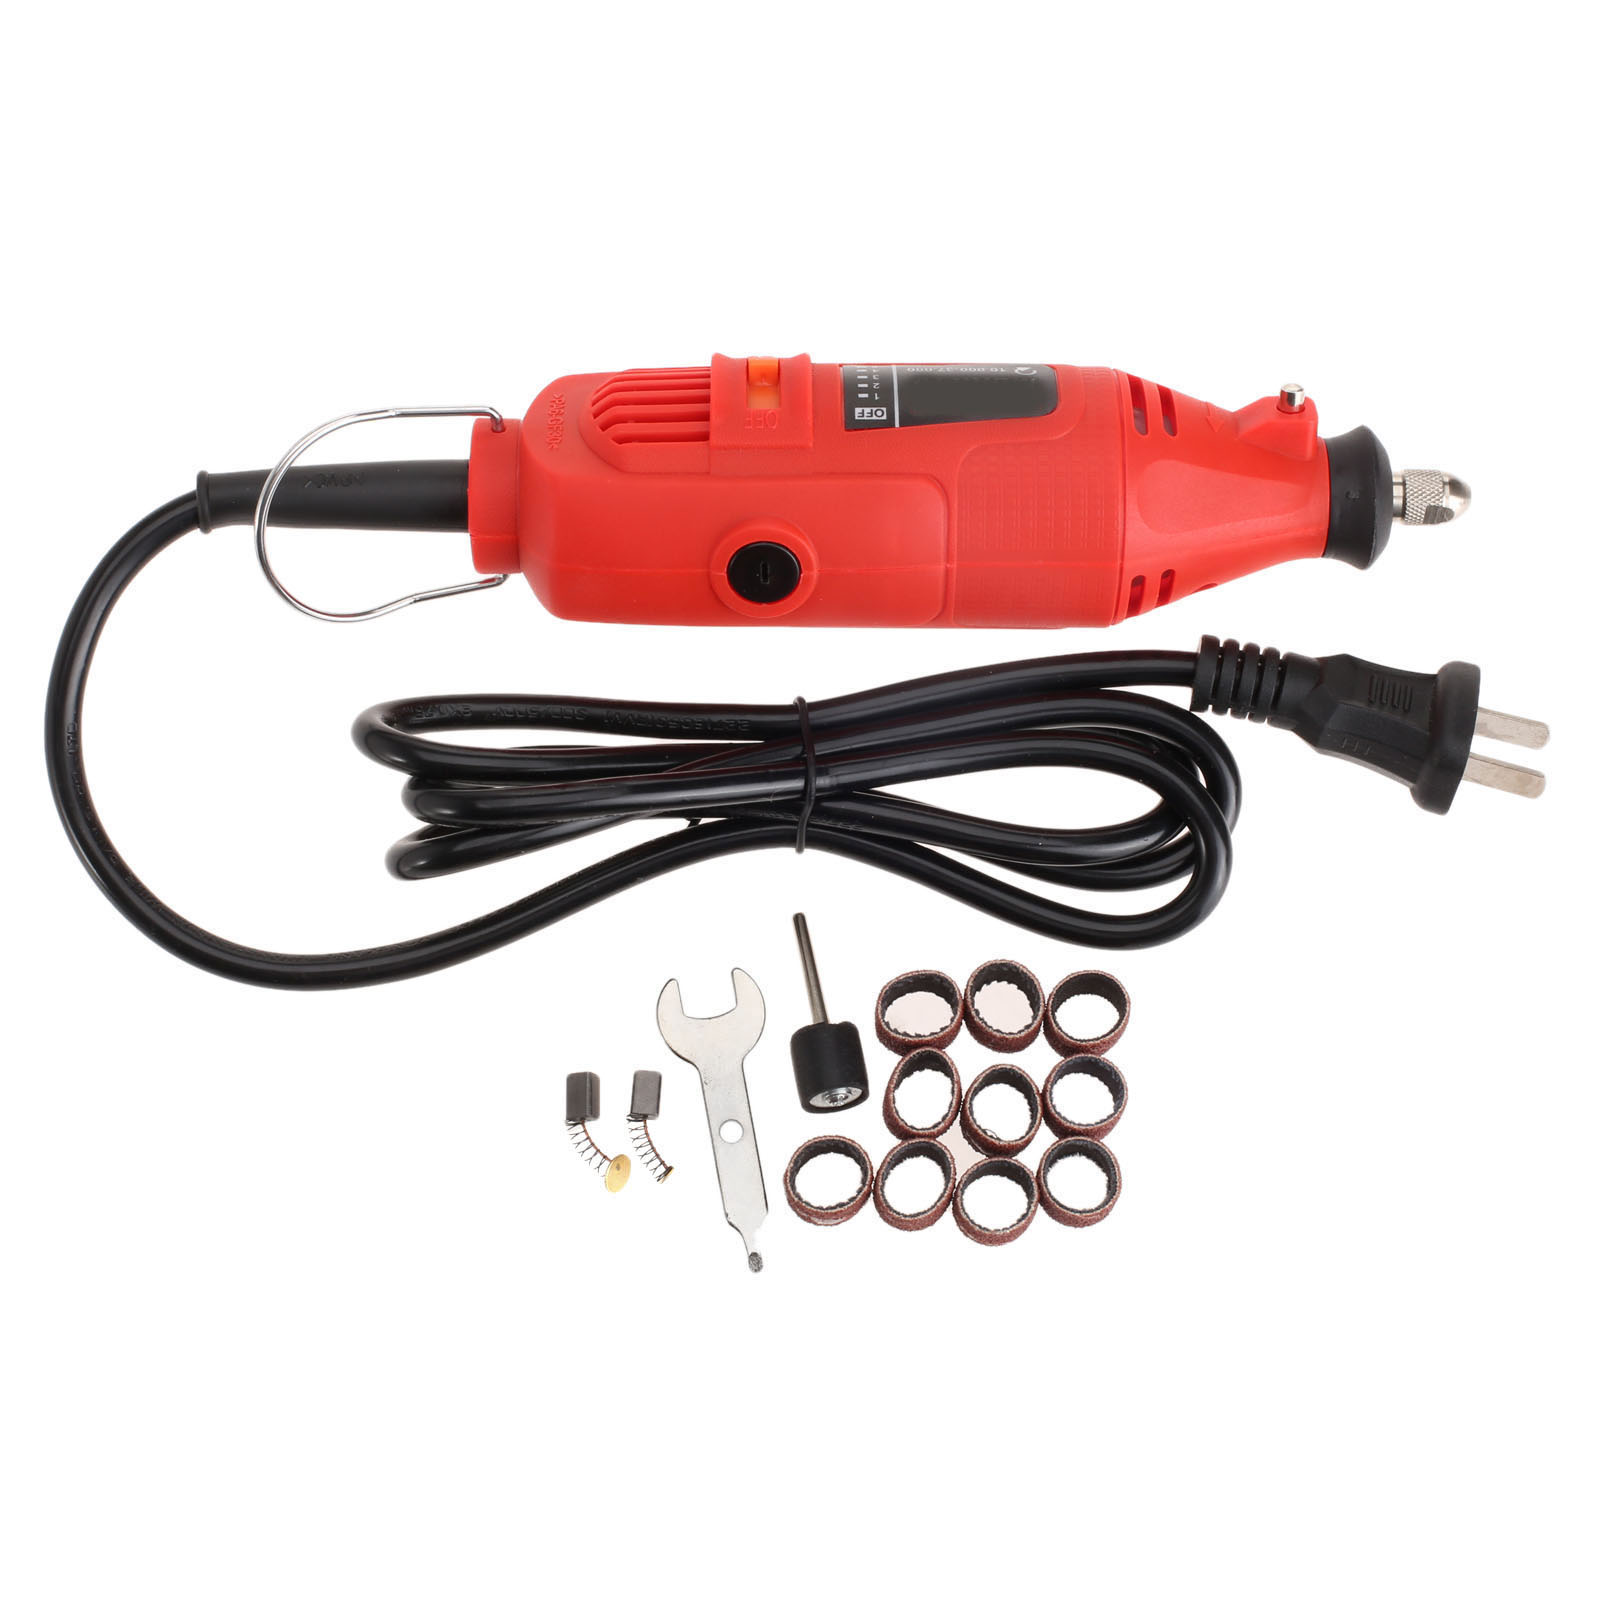 DRELD Electric Drill Grinder 230W with 5 Position Variable Speed Rotary Tool Mini Grinding Machine +10Pcs Sanding Bands +Mandrel<br>